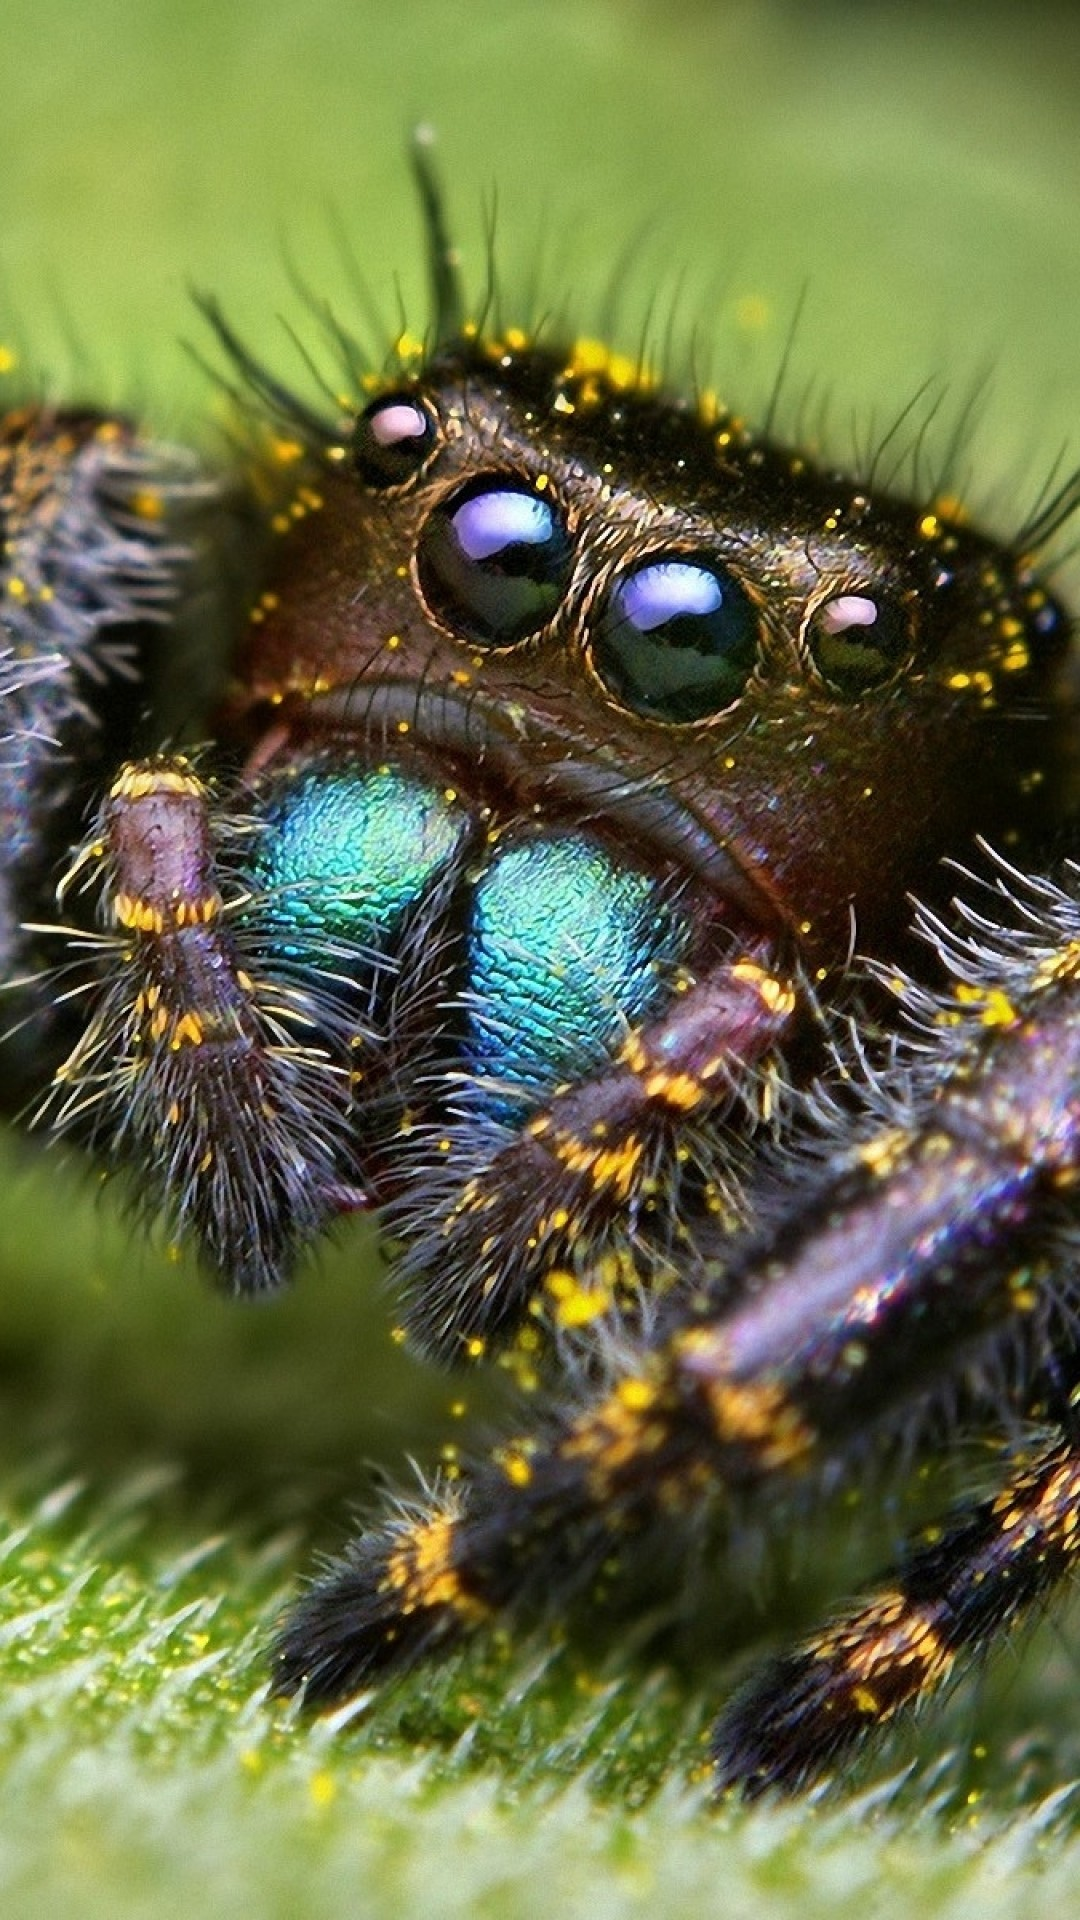 Scary Spider Wallpaper 65 Images